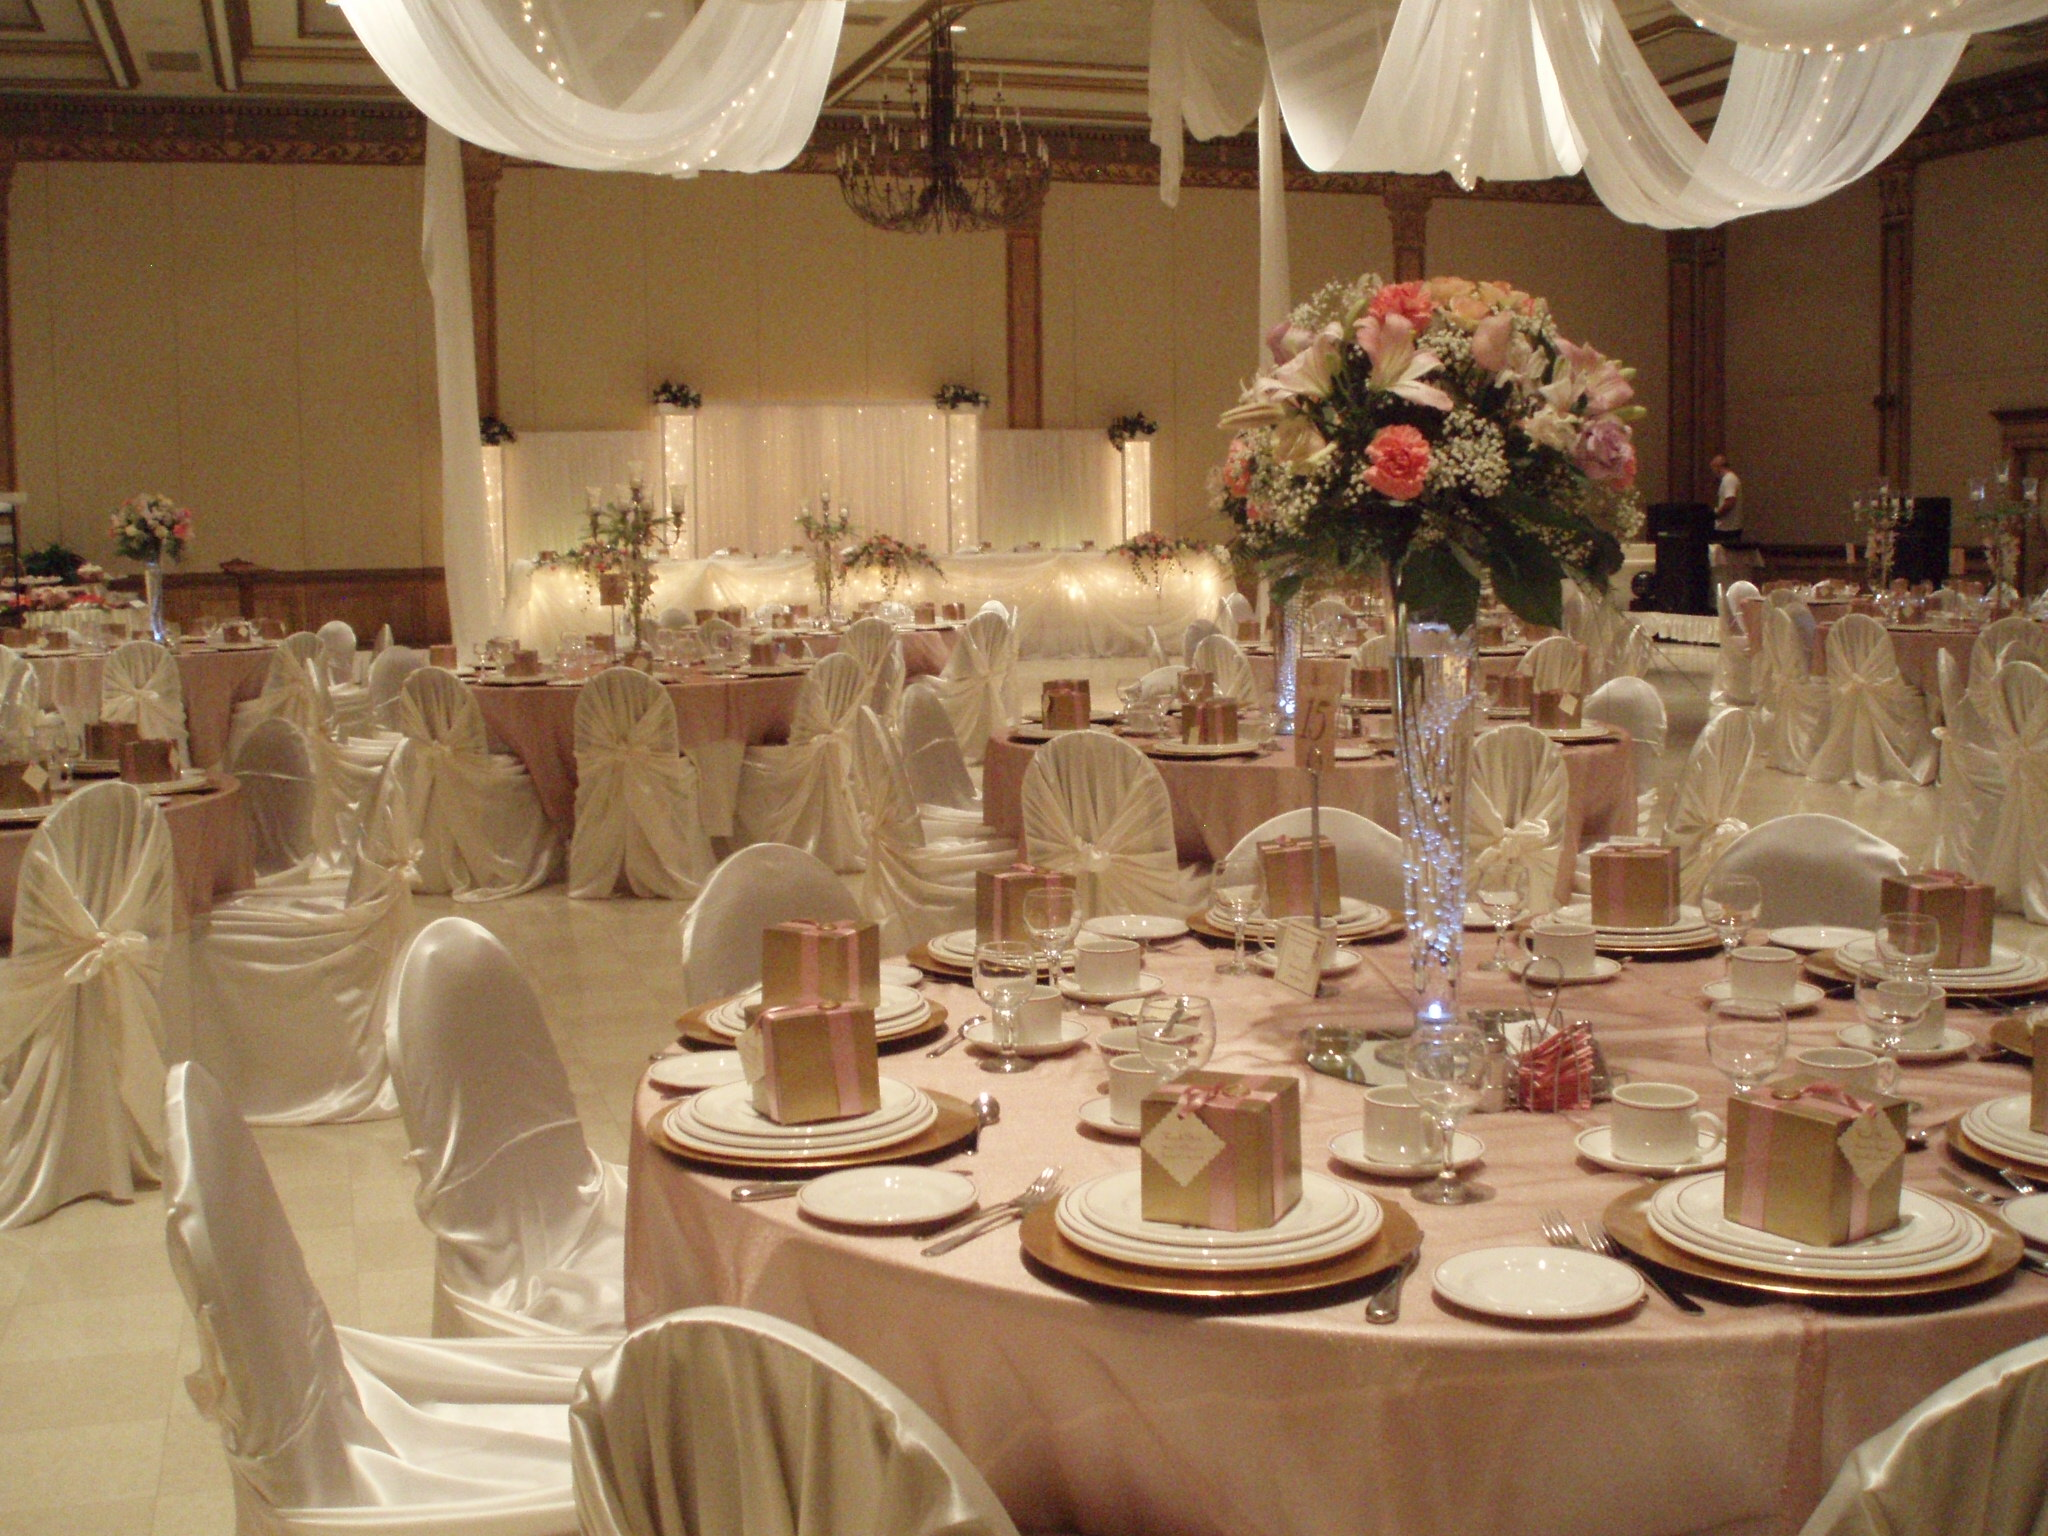 Image gallery event decorationa for Wedding planner decoration